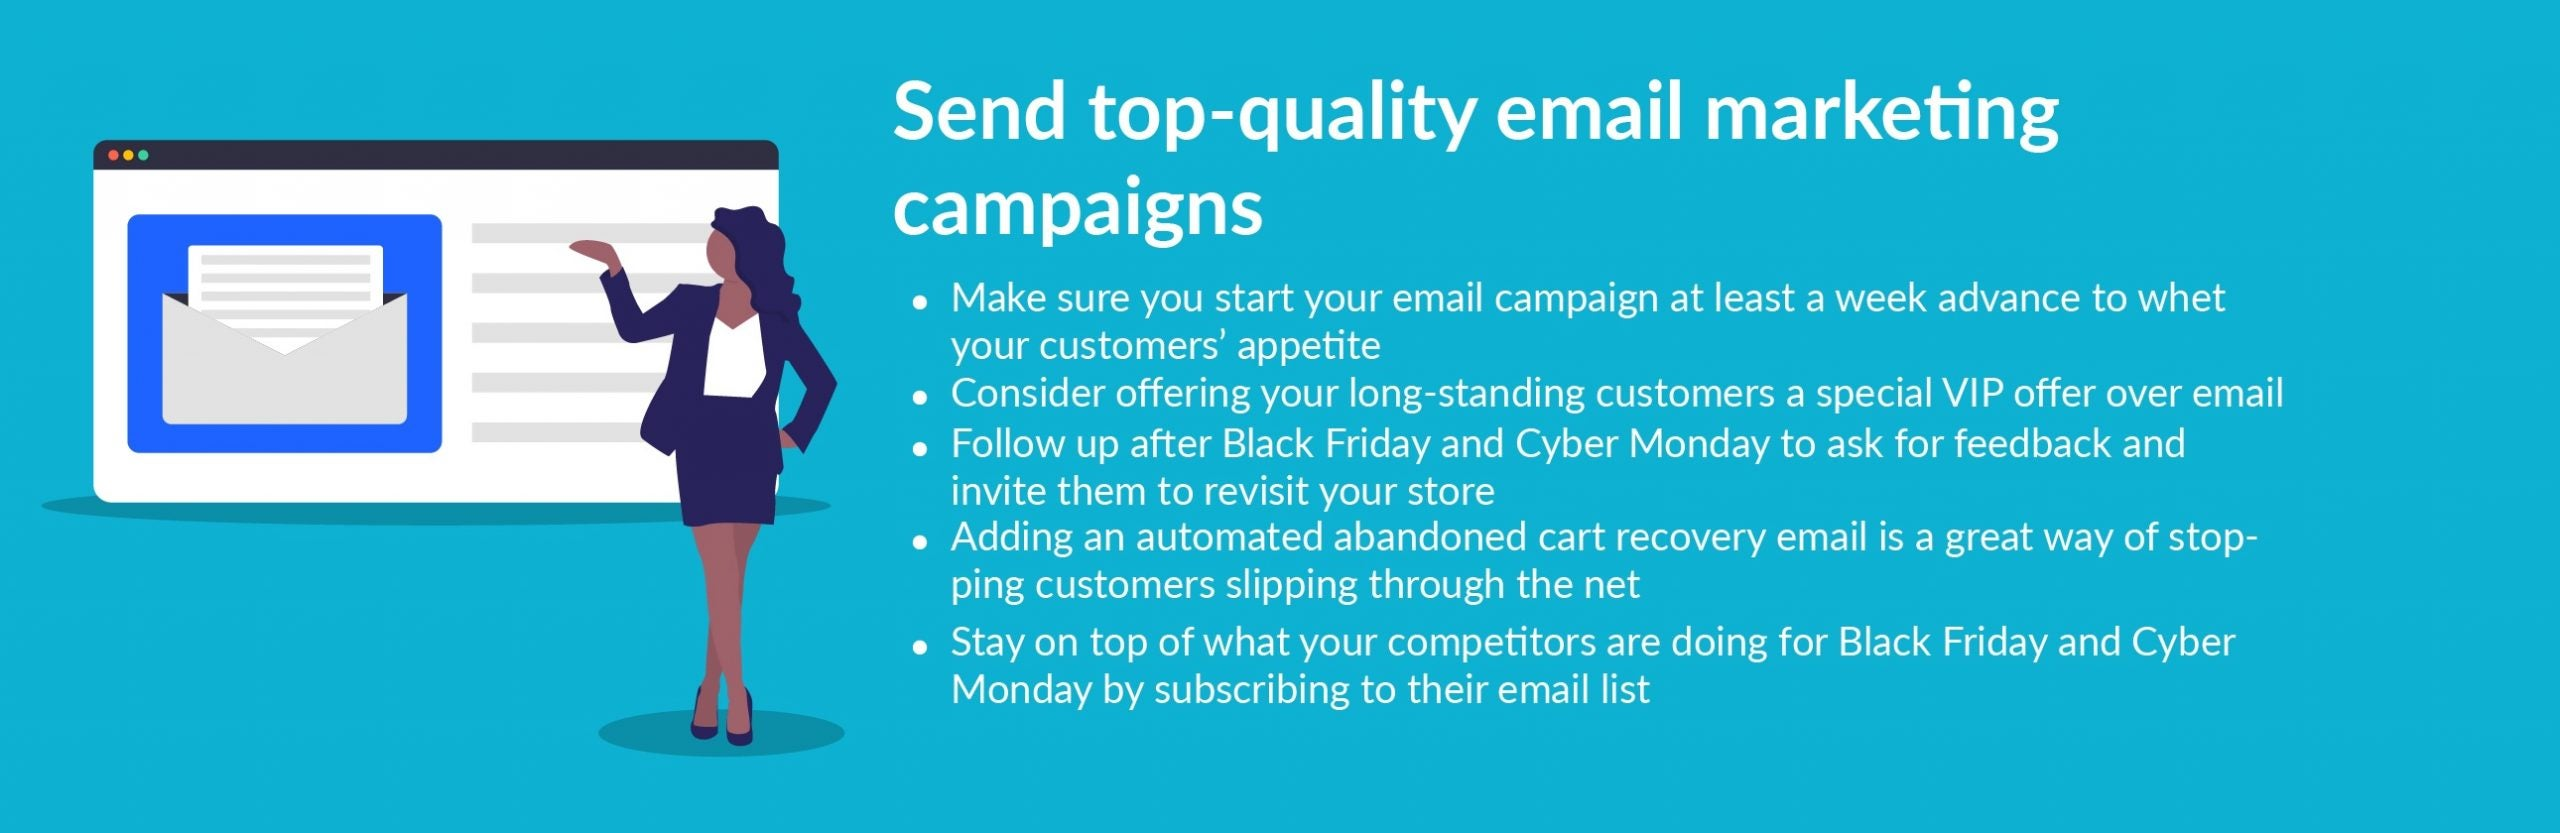 black friday tip send email campaigns